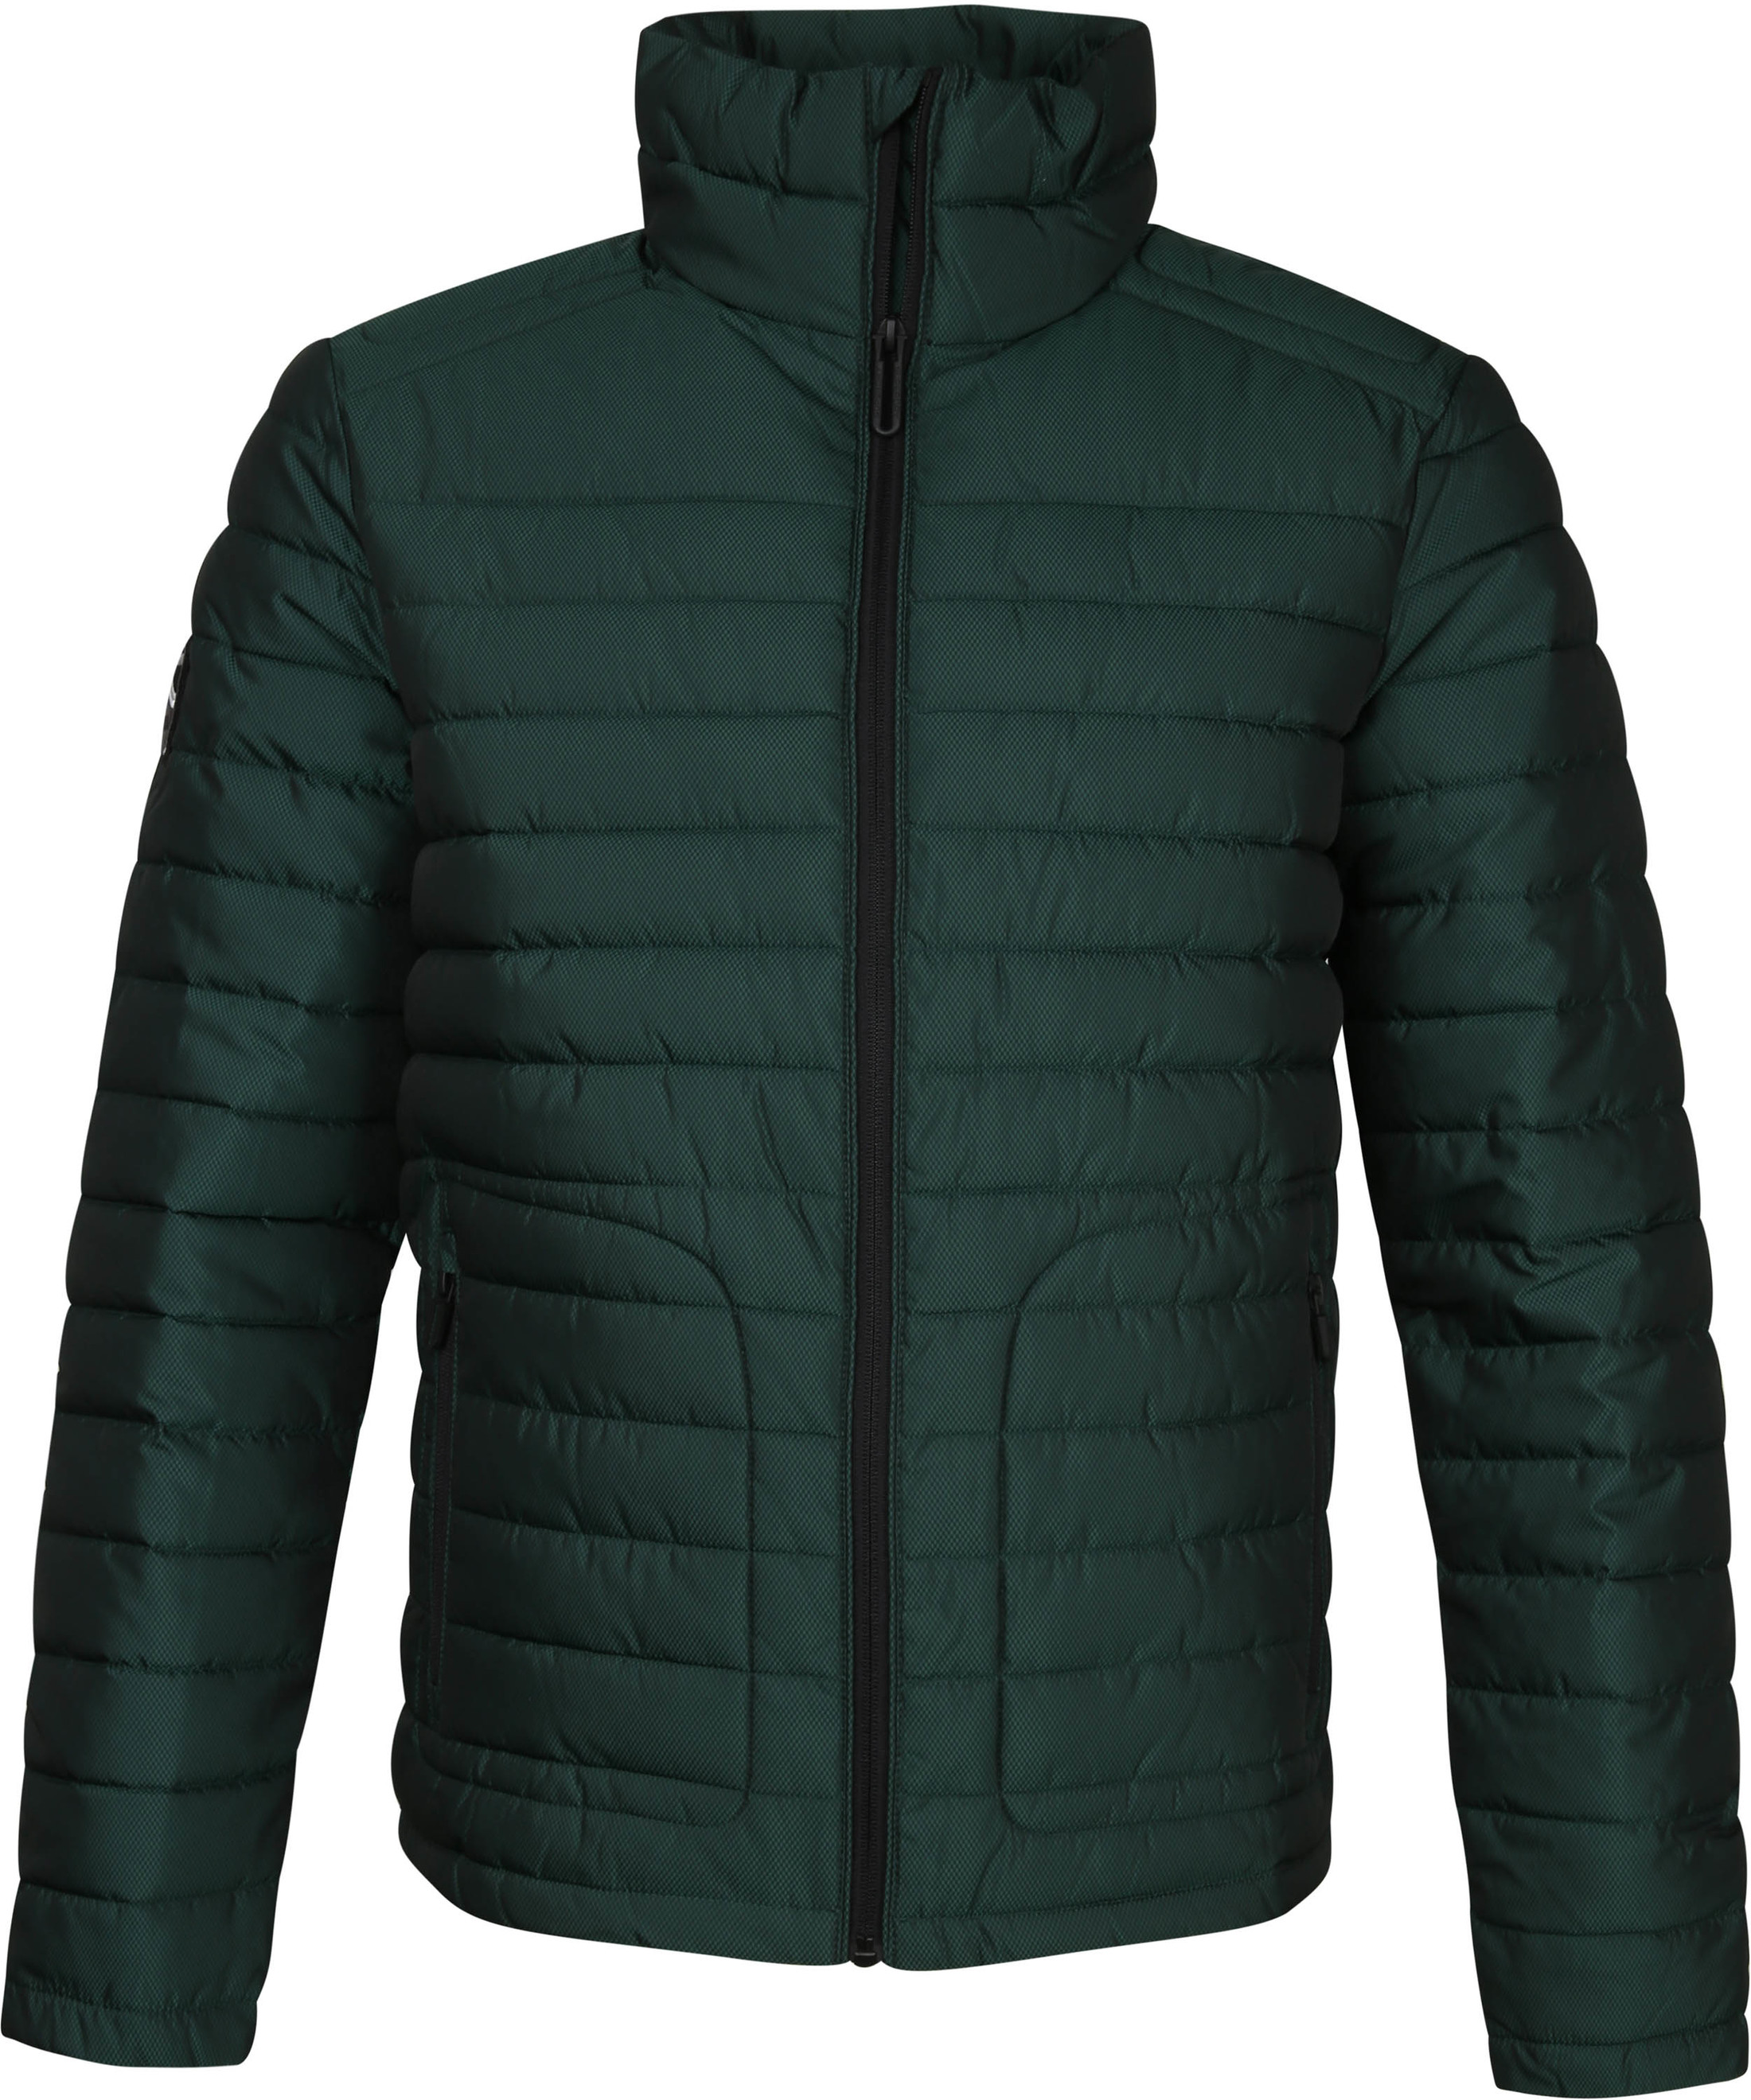 Superdry Fuji Jack Herringbone Green